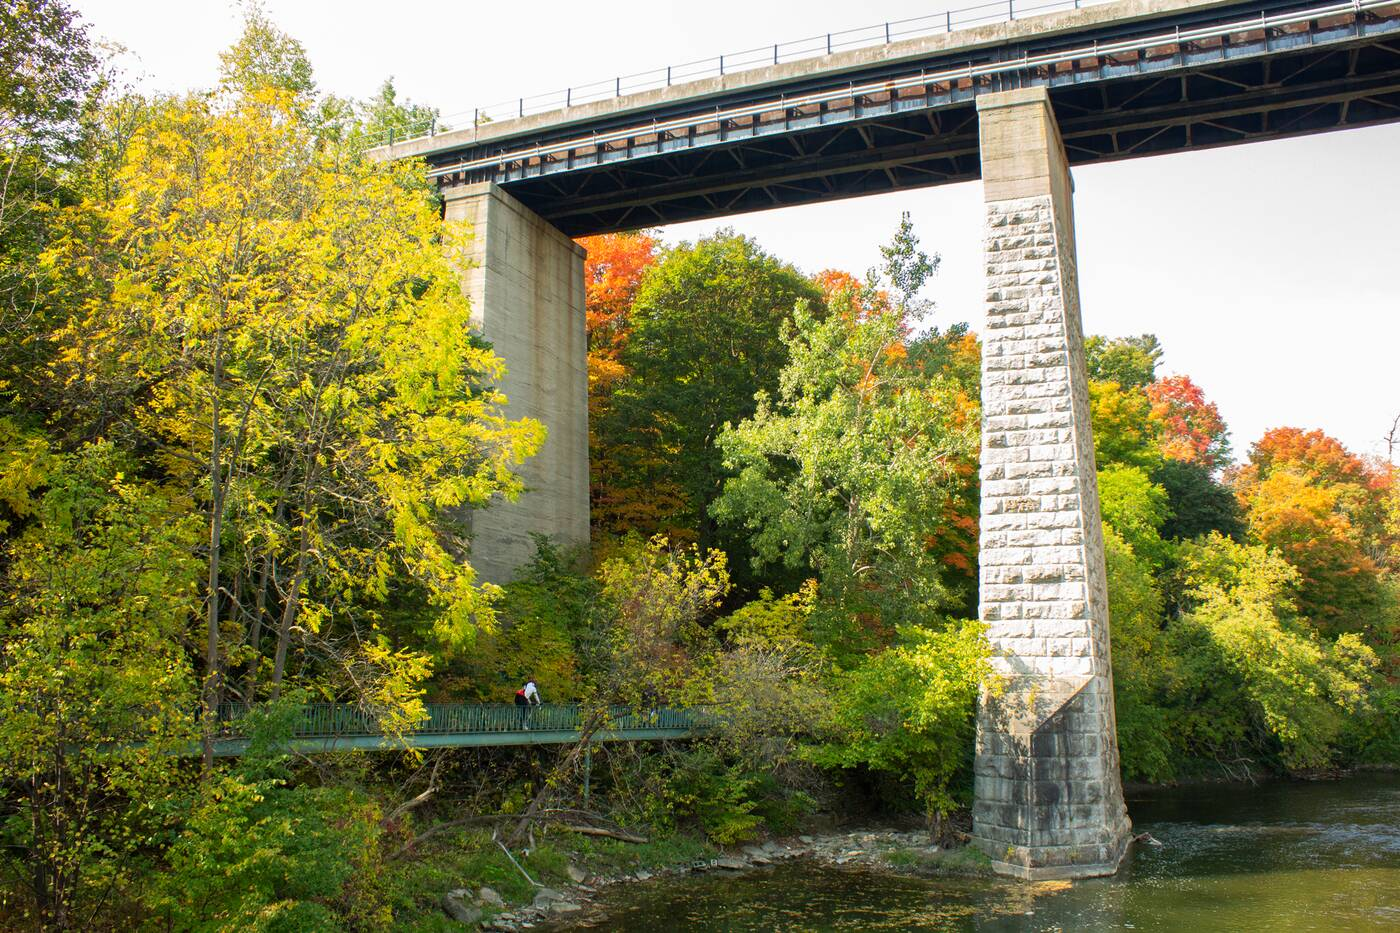 humber river recreational trail